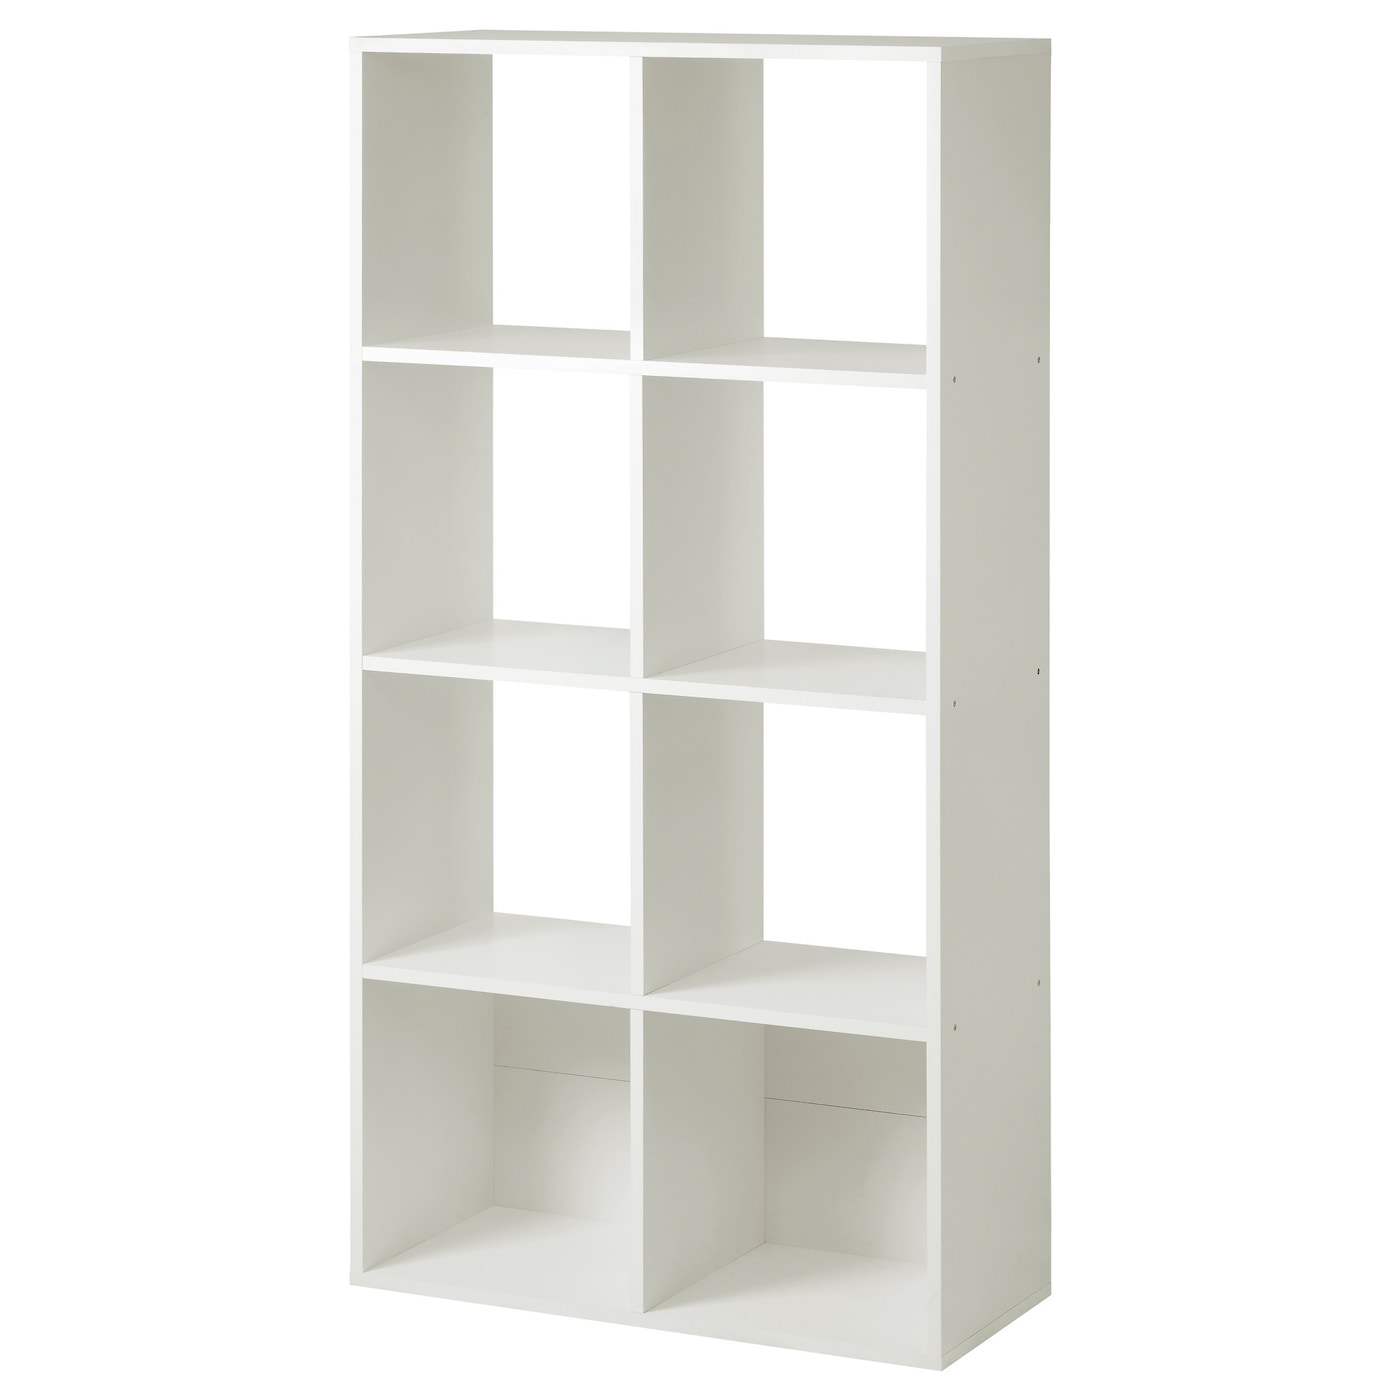 Shelving units shelving systems ikea for Ikea box shelf unit